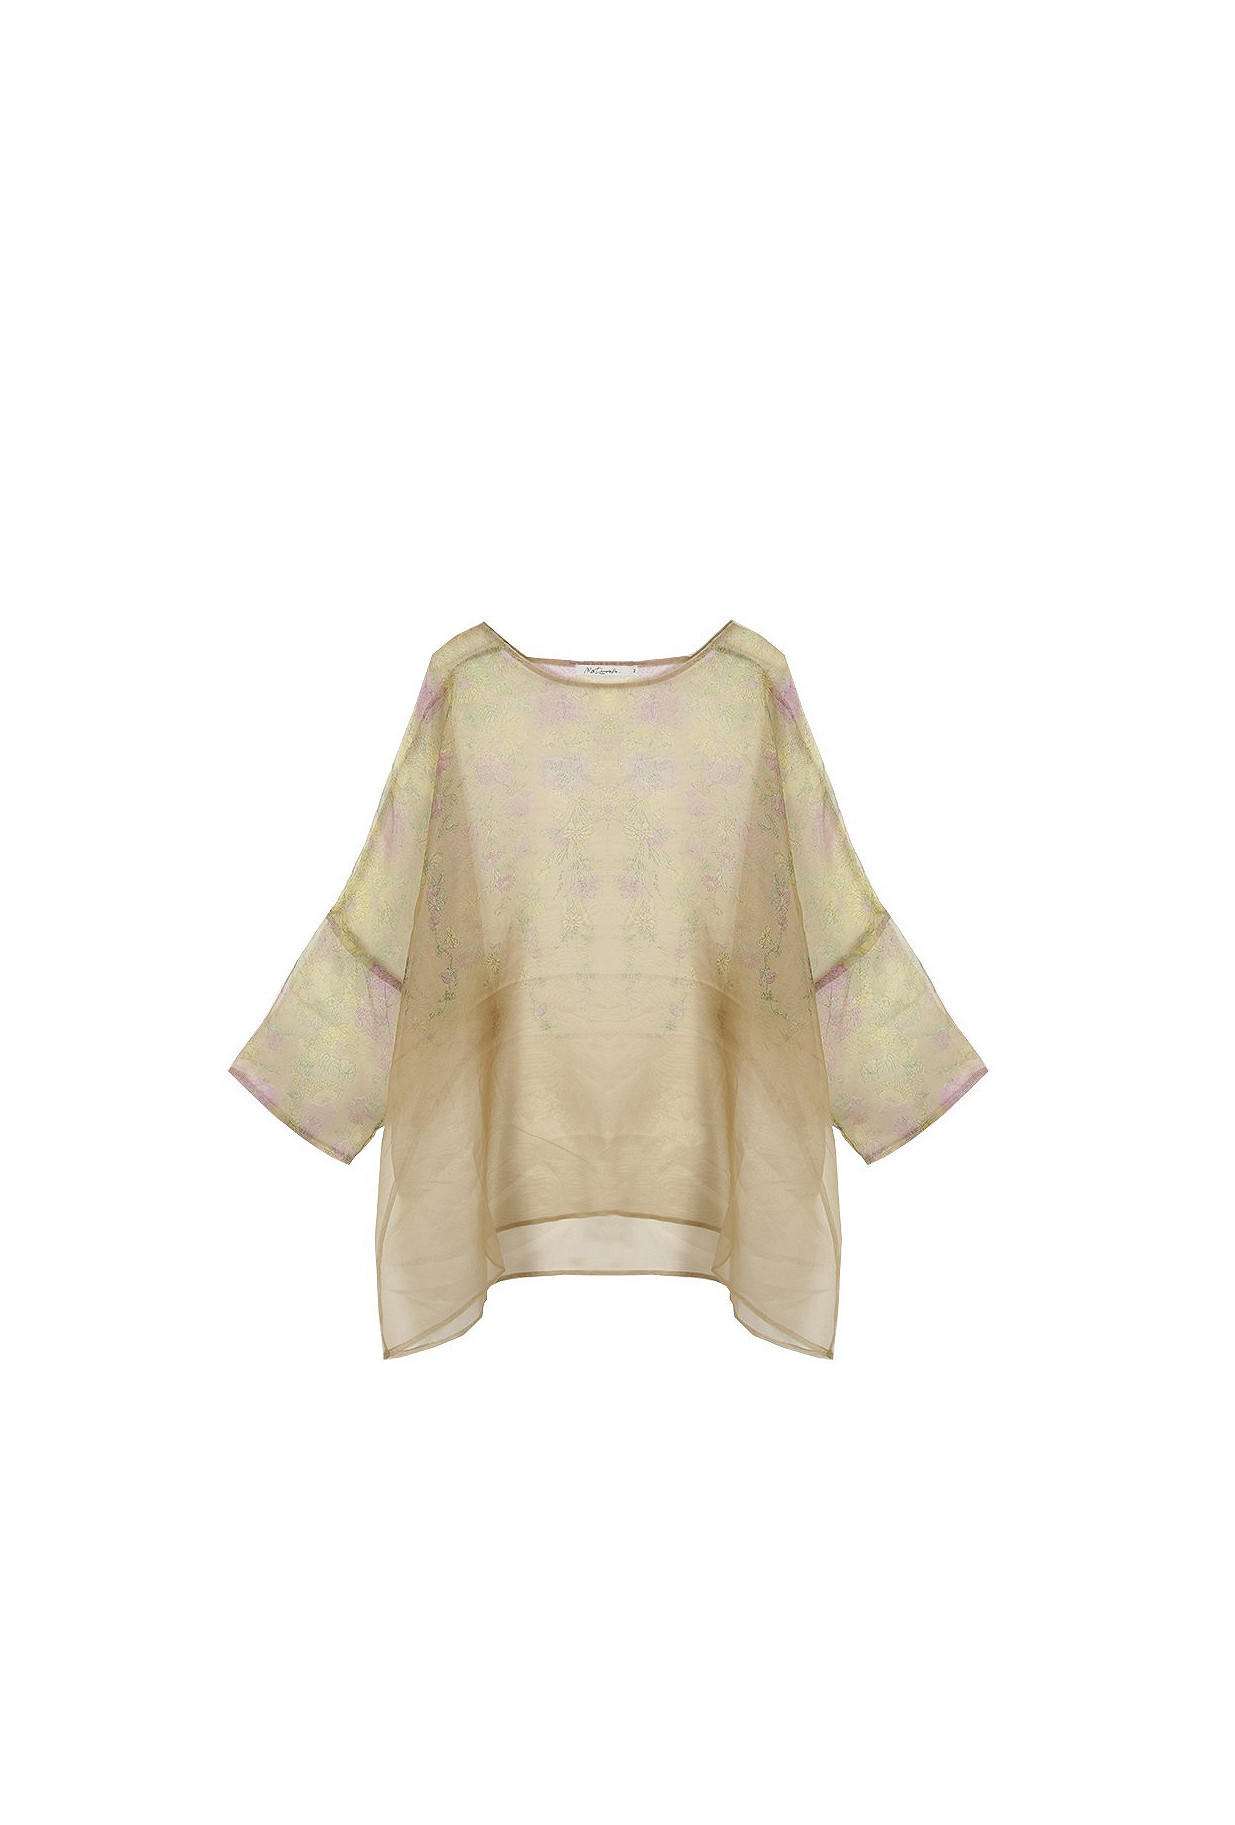 BLOUSE Naturel  Anthemis mes demoiselles paris vêtement femme paris